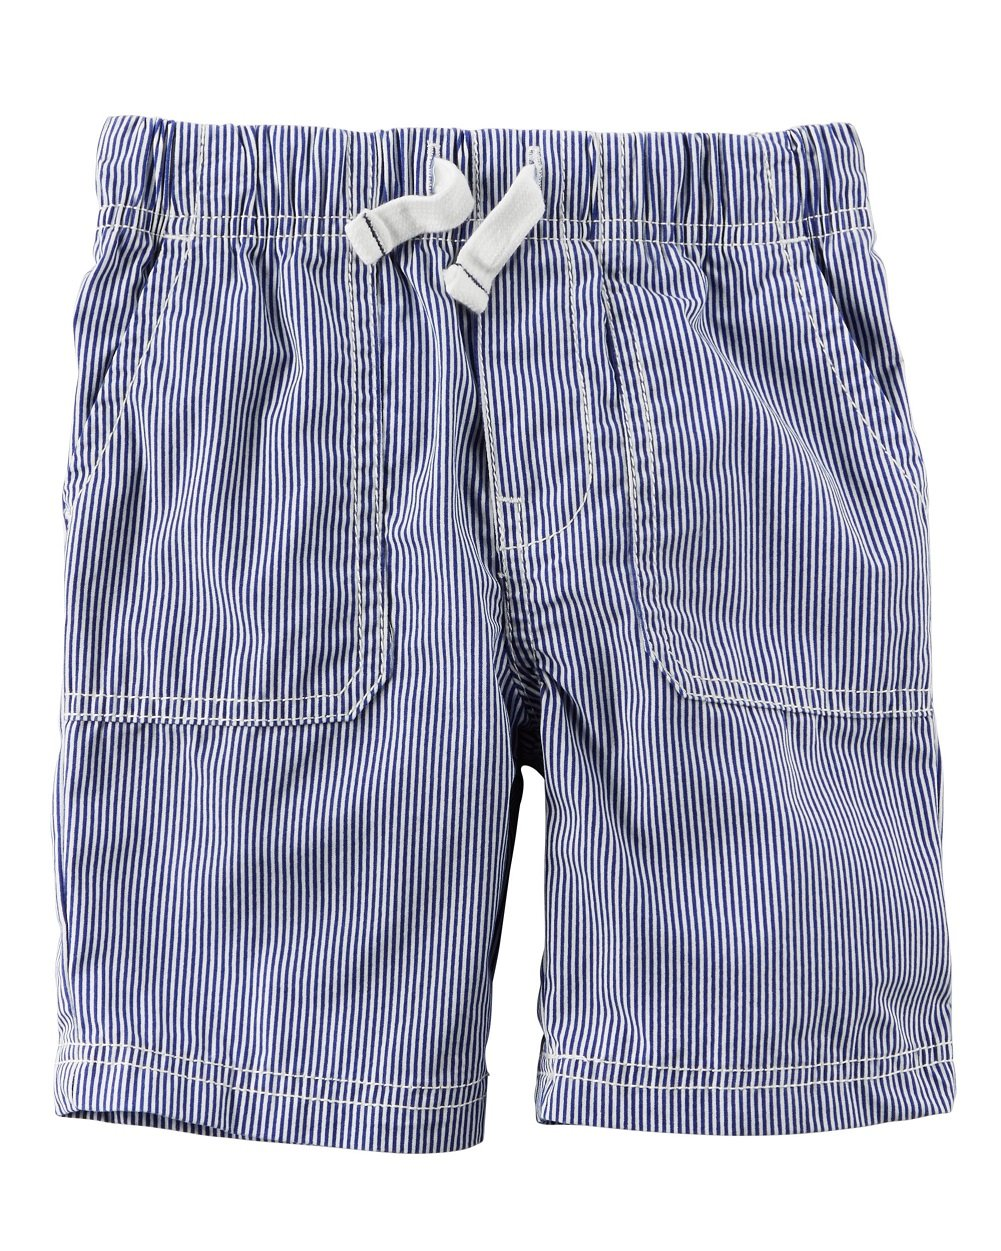 Carter's Boys' Pull On Poplin Navy and White Striped Shorts (3t)